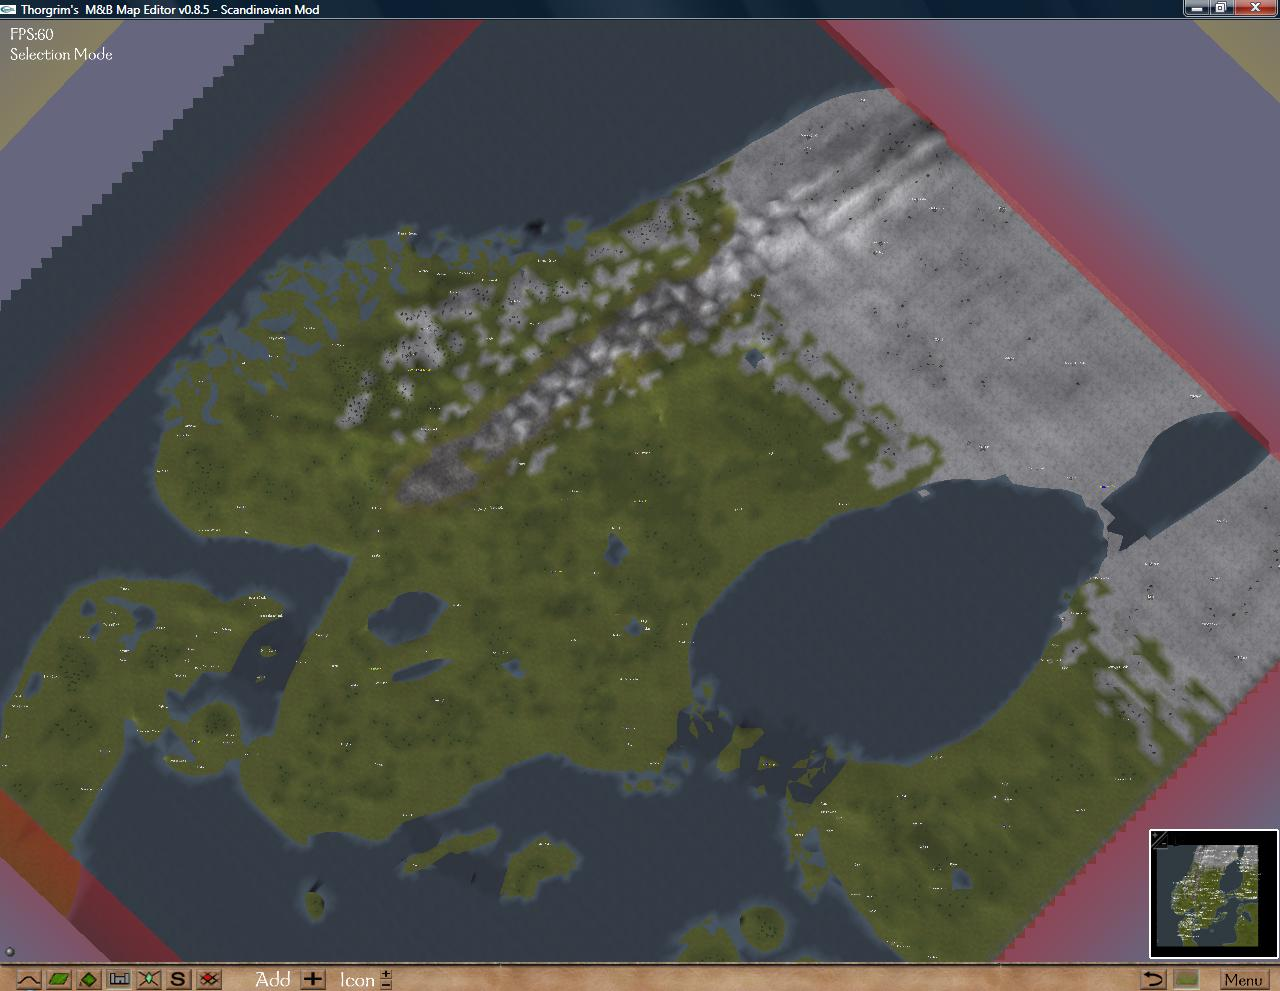 Mount and blade warband editor map best blade 2017 mount and blade warband persistent world advanced ming the tools of trade map editor gumiabroncs Choice Image